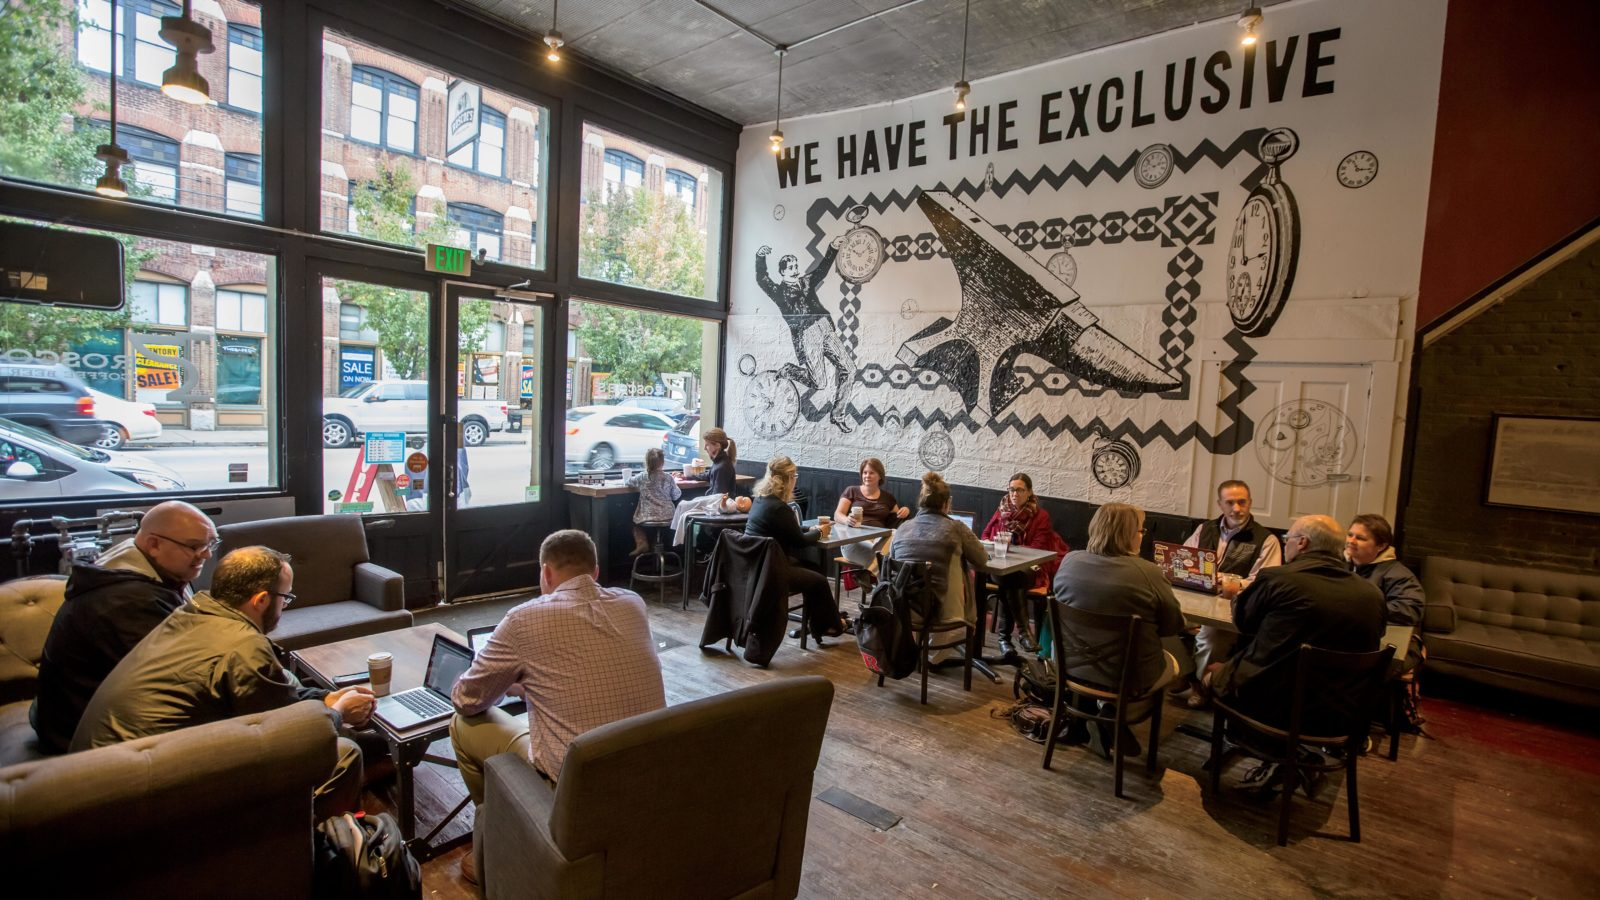 Customers fill Roscoe's Coffee Bar and Tap Room in the Depot District of downtown Richmond, Indiana